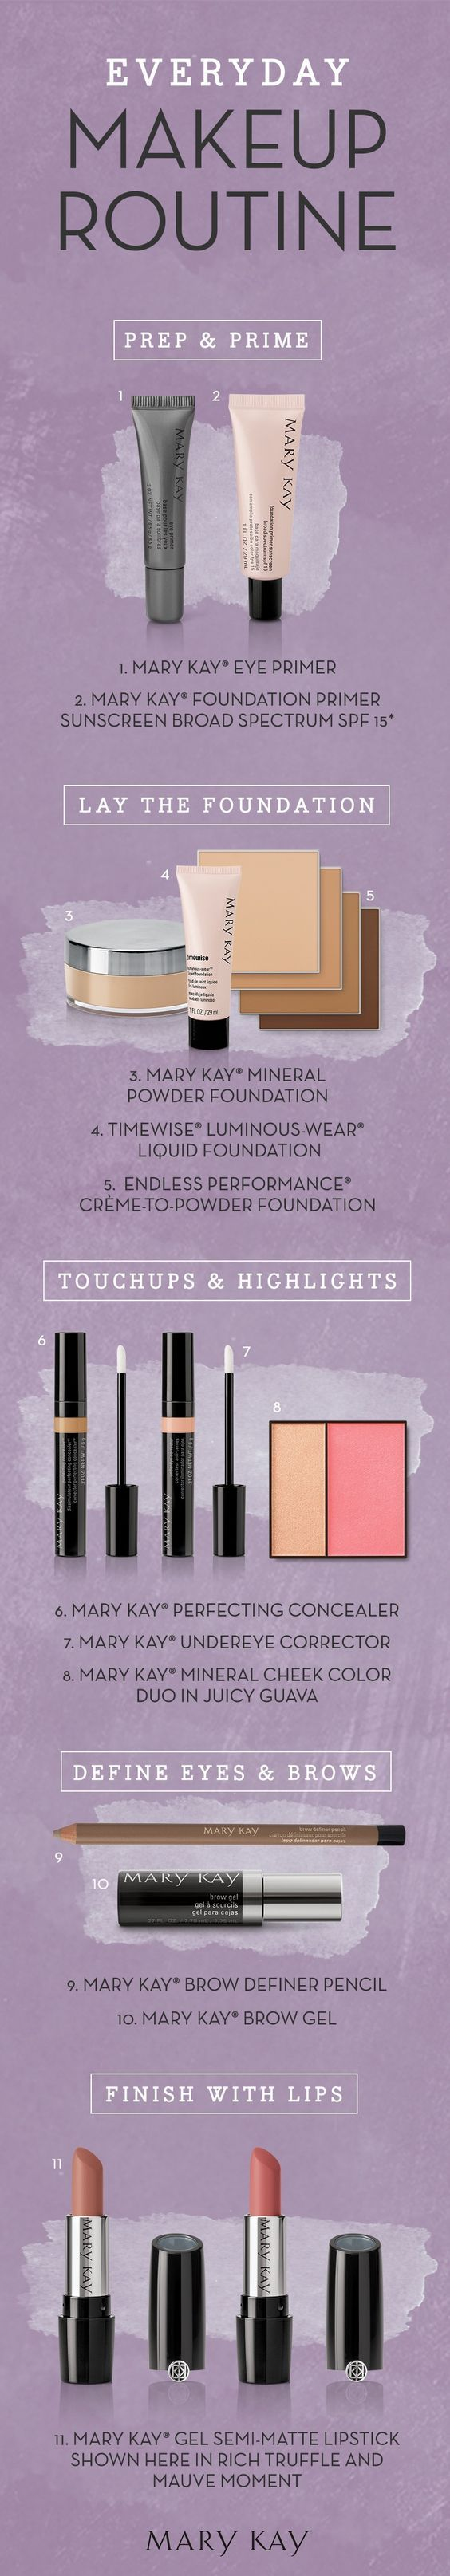 Our go-to Mary Kay makeup routine, everyday! Discover some everyday must-haves, from skincare prep to finishing touches.